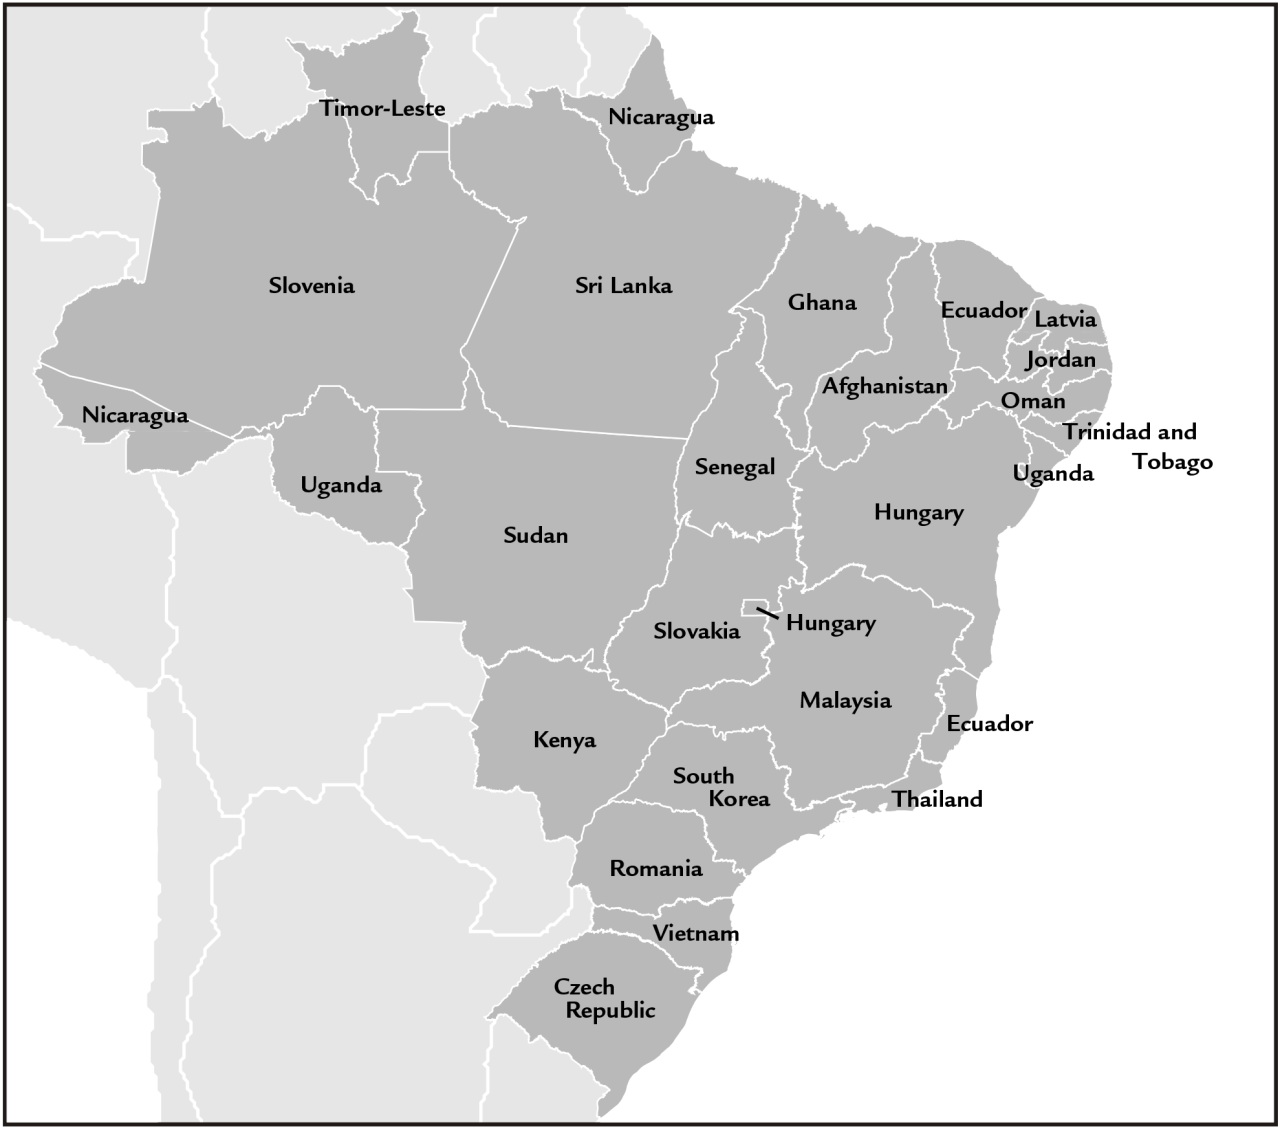 Brazilian states as countries with similar GDP